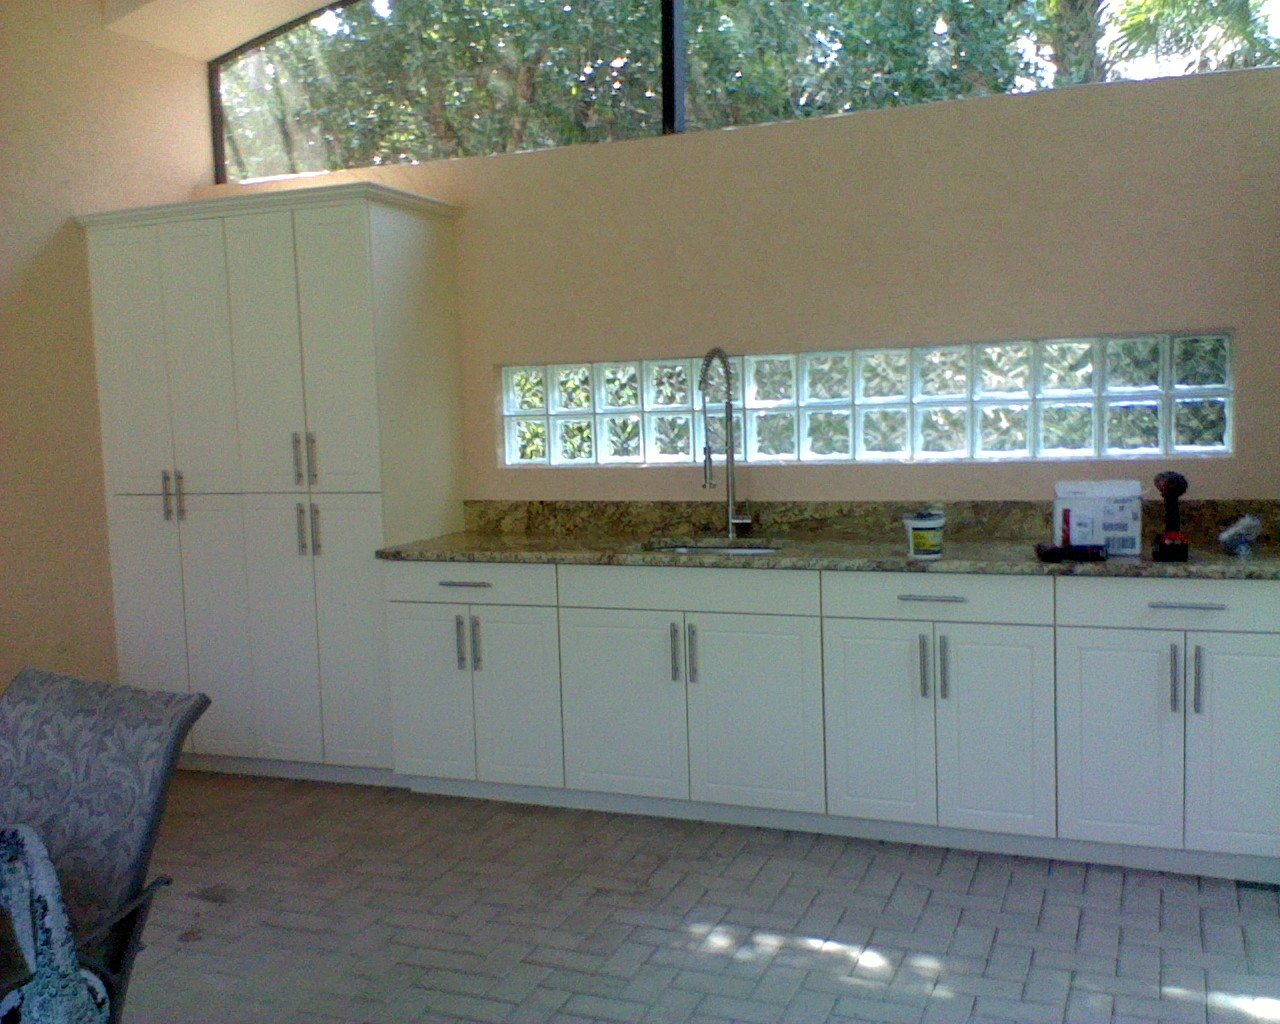 Chadwick Outdoor KitchensPolymer - Chadwick Outdoor Kitchens